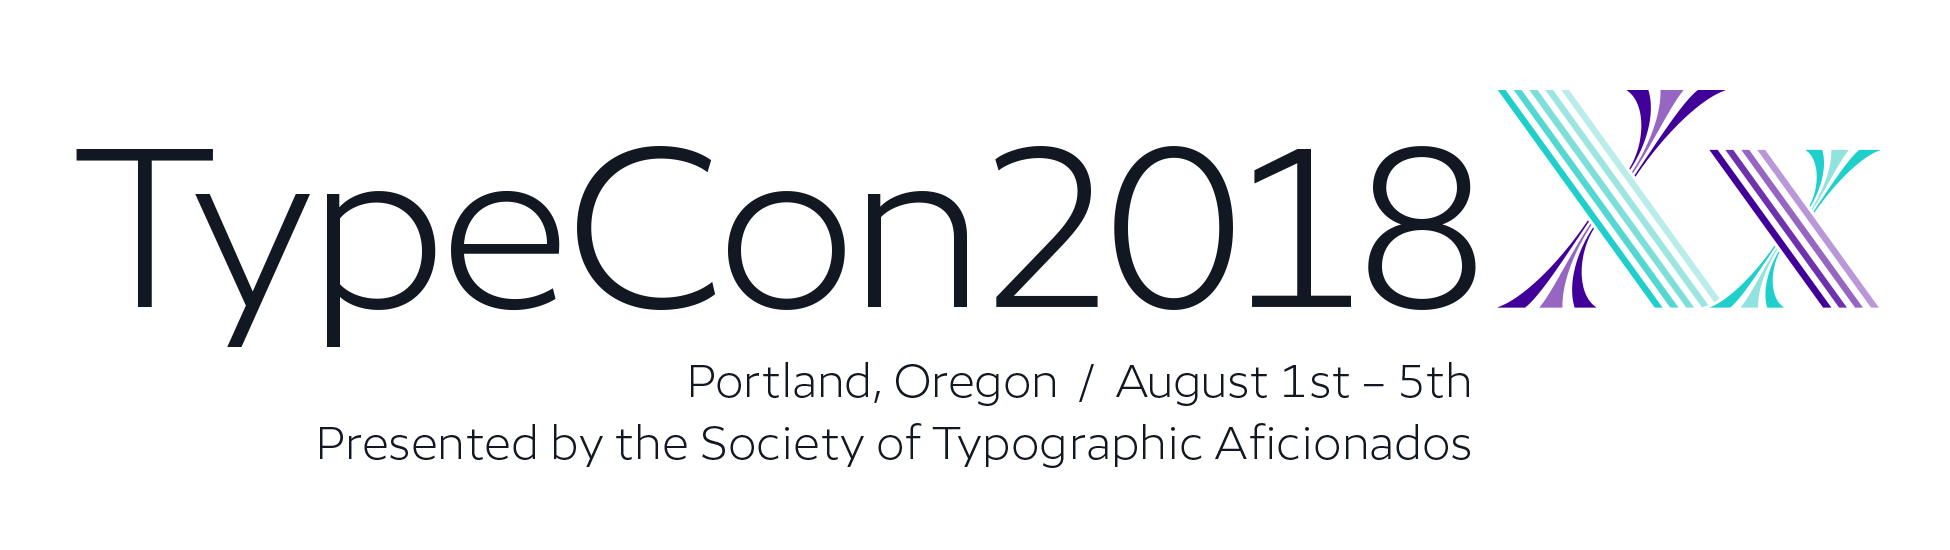 TypeCon2018 | Presented by the Society of Typographic Aficionados